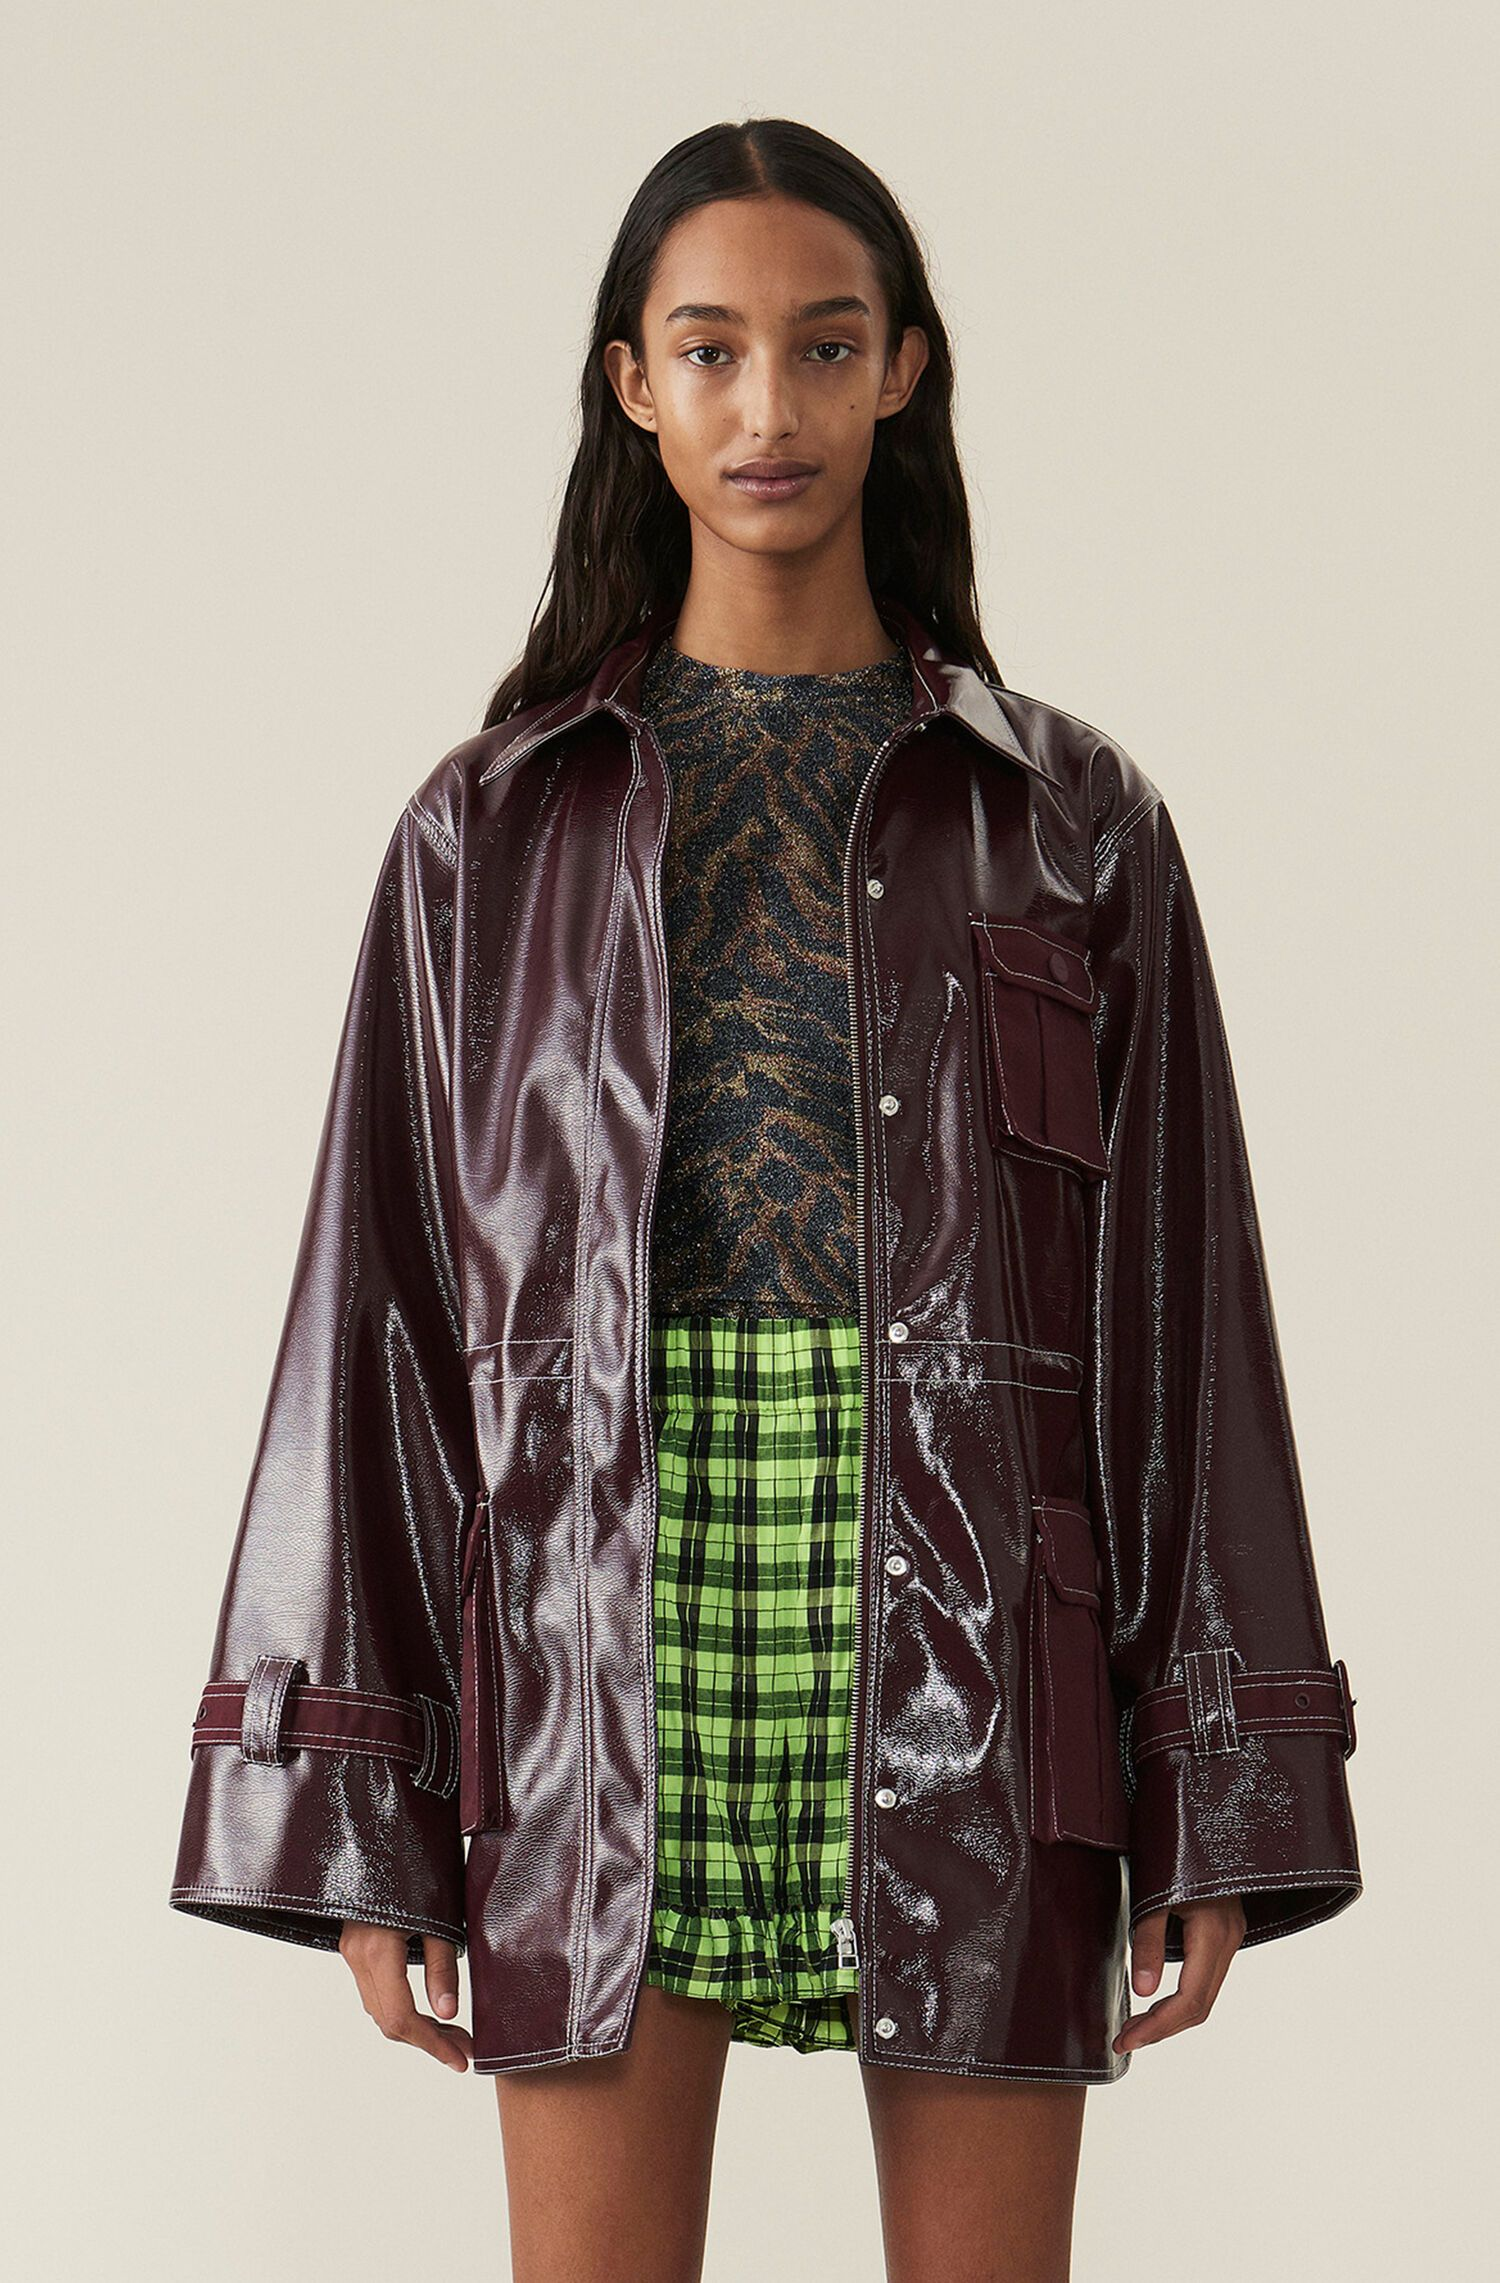 Oversized Patent Shirt Jacket Featuring Ganni Logo Buttoned Down Fastening At The Front The Jacket Features Utility Detailing An Jackets Shirt Jacket Fashion [ 2283 x 1500 Pixel ]